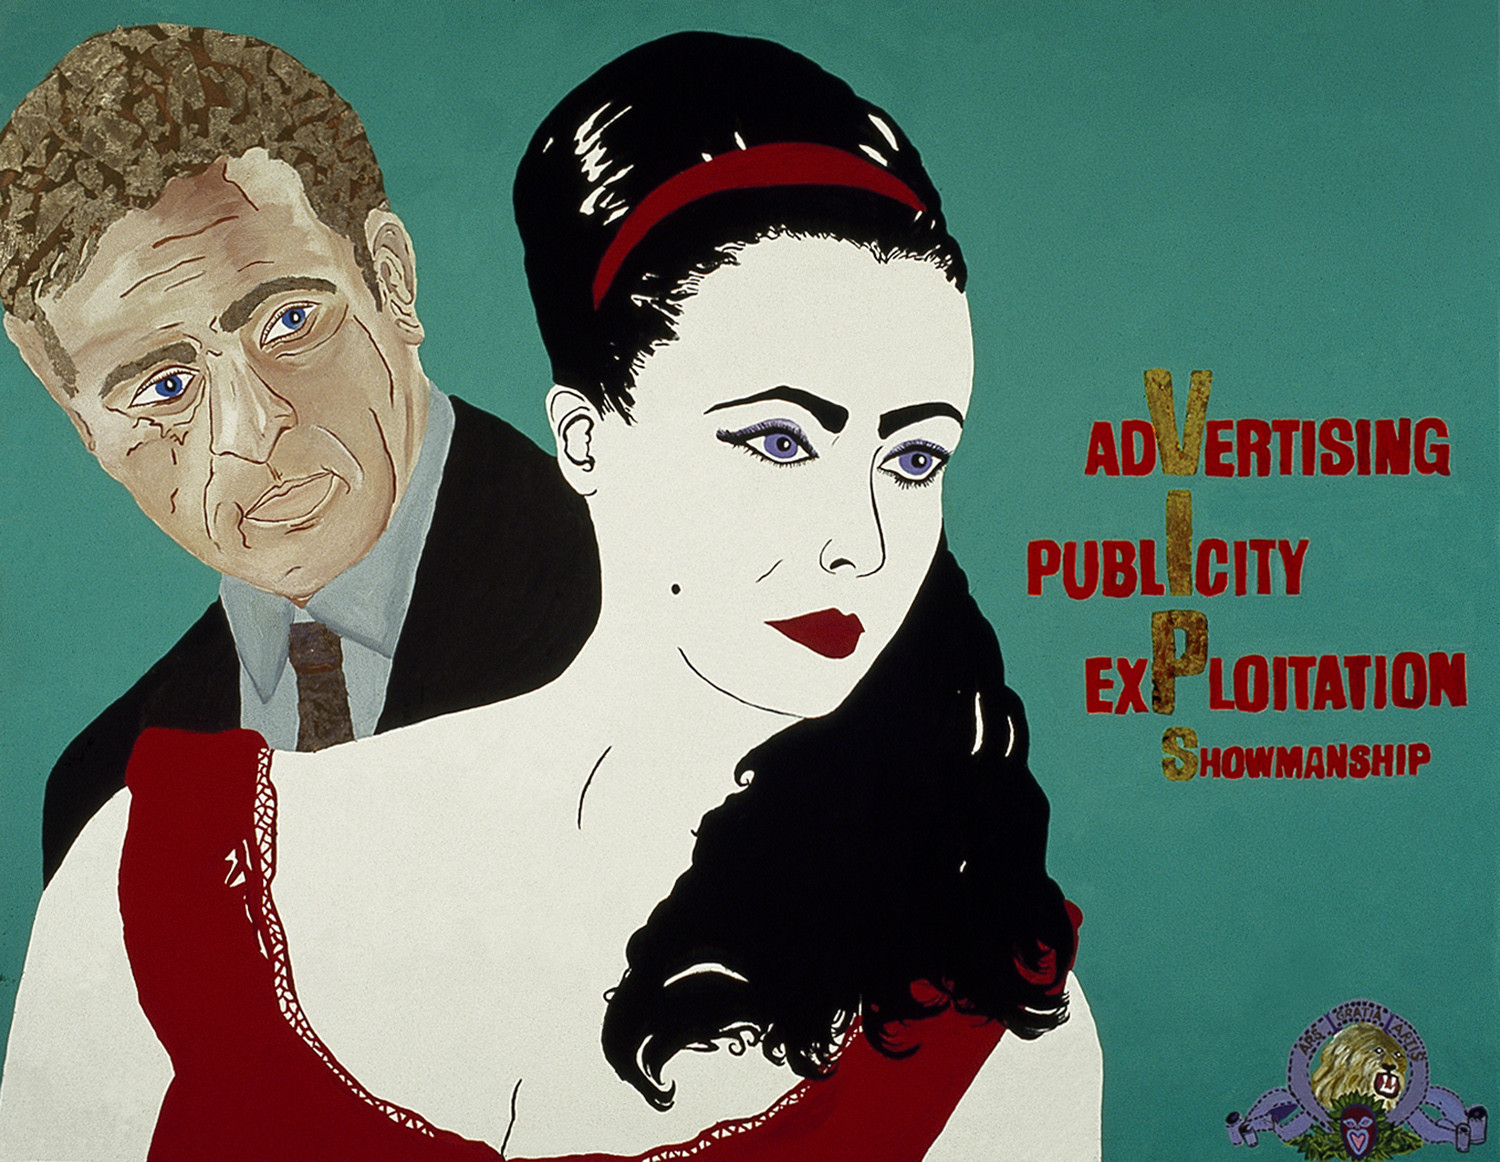 The Artworld: Advertising, Publicity, Exploitation, Showmanship: from the Liz Taylor Series (The VIPs)